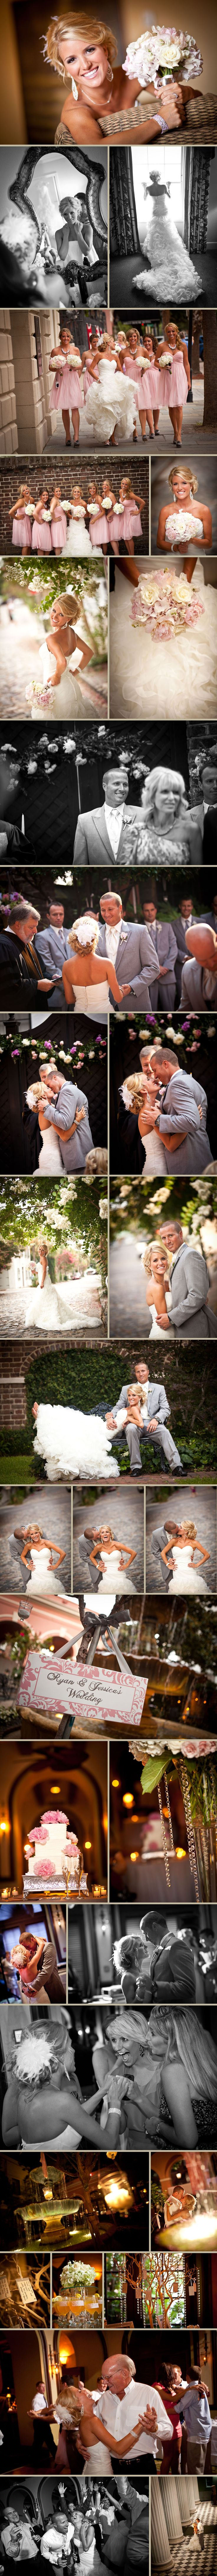 Wedding picture ideas. Also, I love the photography and the wedding colors! Kasey is thinking pink, so this would definitely be